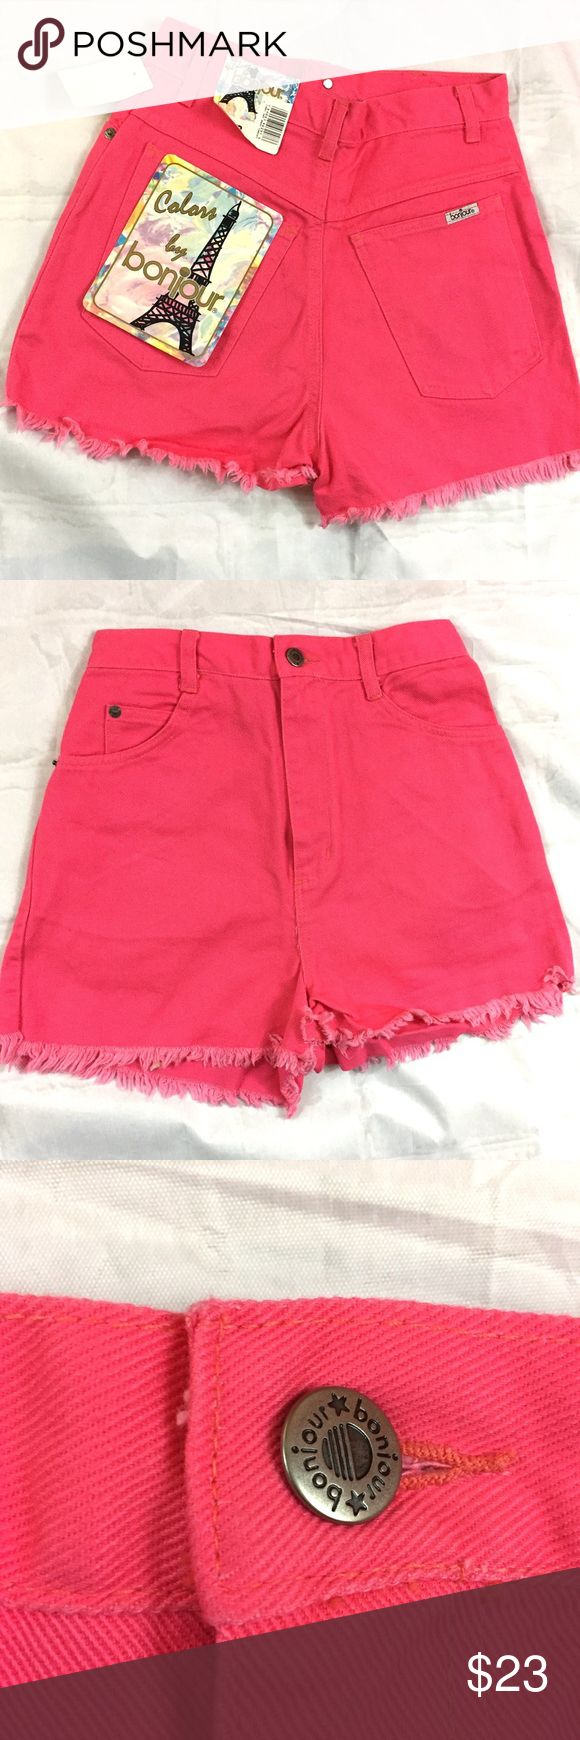 Vintage Bonjour High Waisted Jean Sorts Hot Pink Wow!  These incredibly cool hot pink shorts have the ORIGINAL TAGS attached!  These Bonjour brand shorts were purchased at Bradlees, a now-defunct New England chain store. They closed right around 2000. High waisted short-shorts are super on trend.  They've got the 90's vibe that everyone is loving right now. Bonjour Shorts Jean Shorts